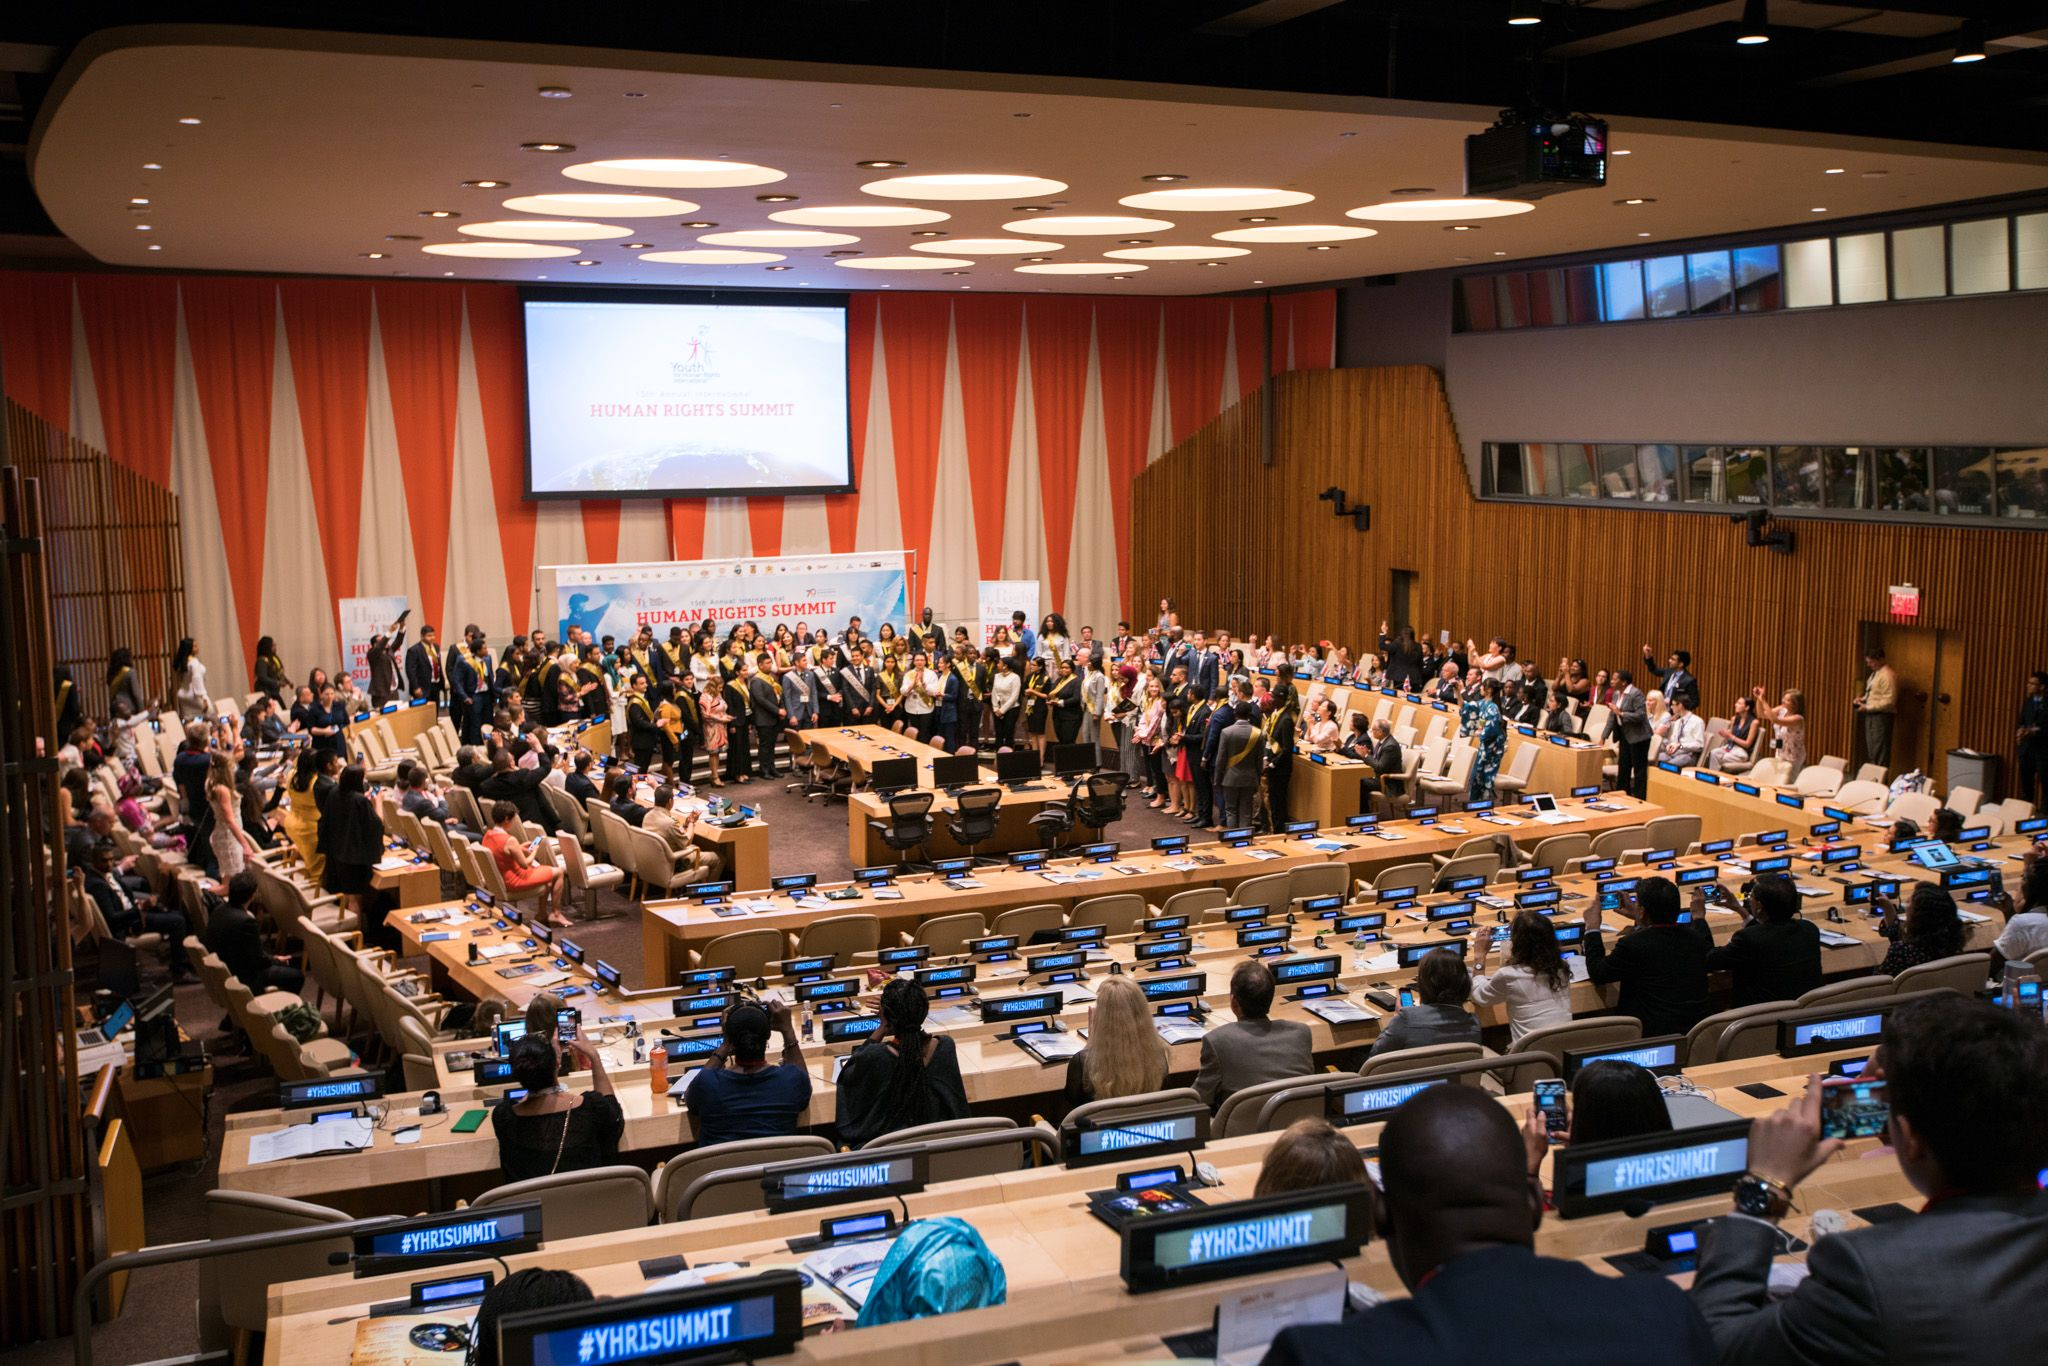 15th annual Human Rights Summit of Youth for Human Rights International at the United Nations